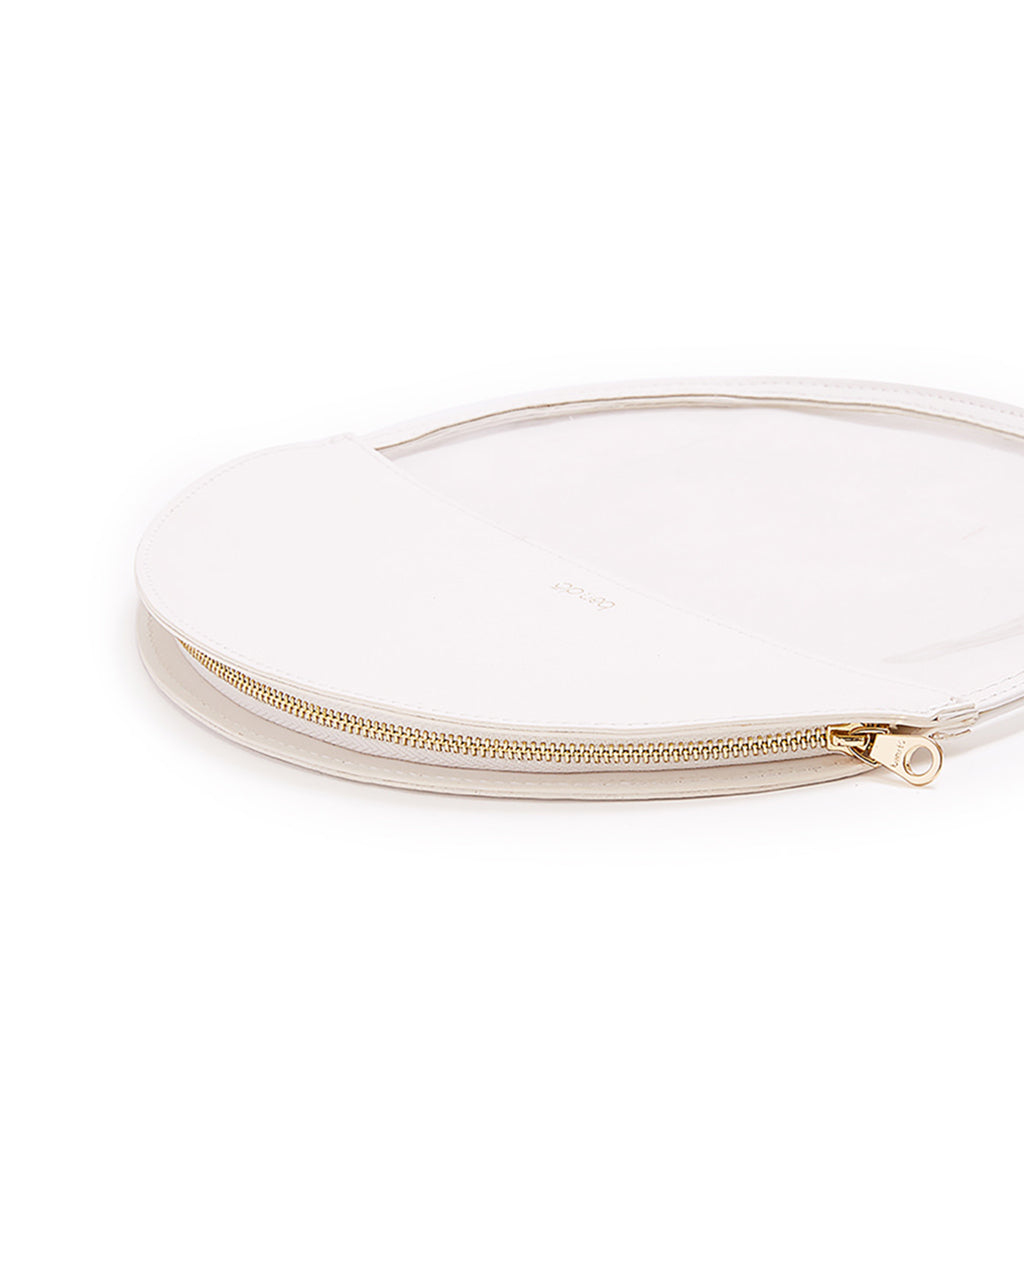 close up of brass zipper on white circle clutch